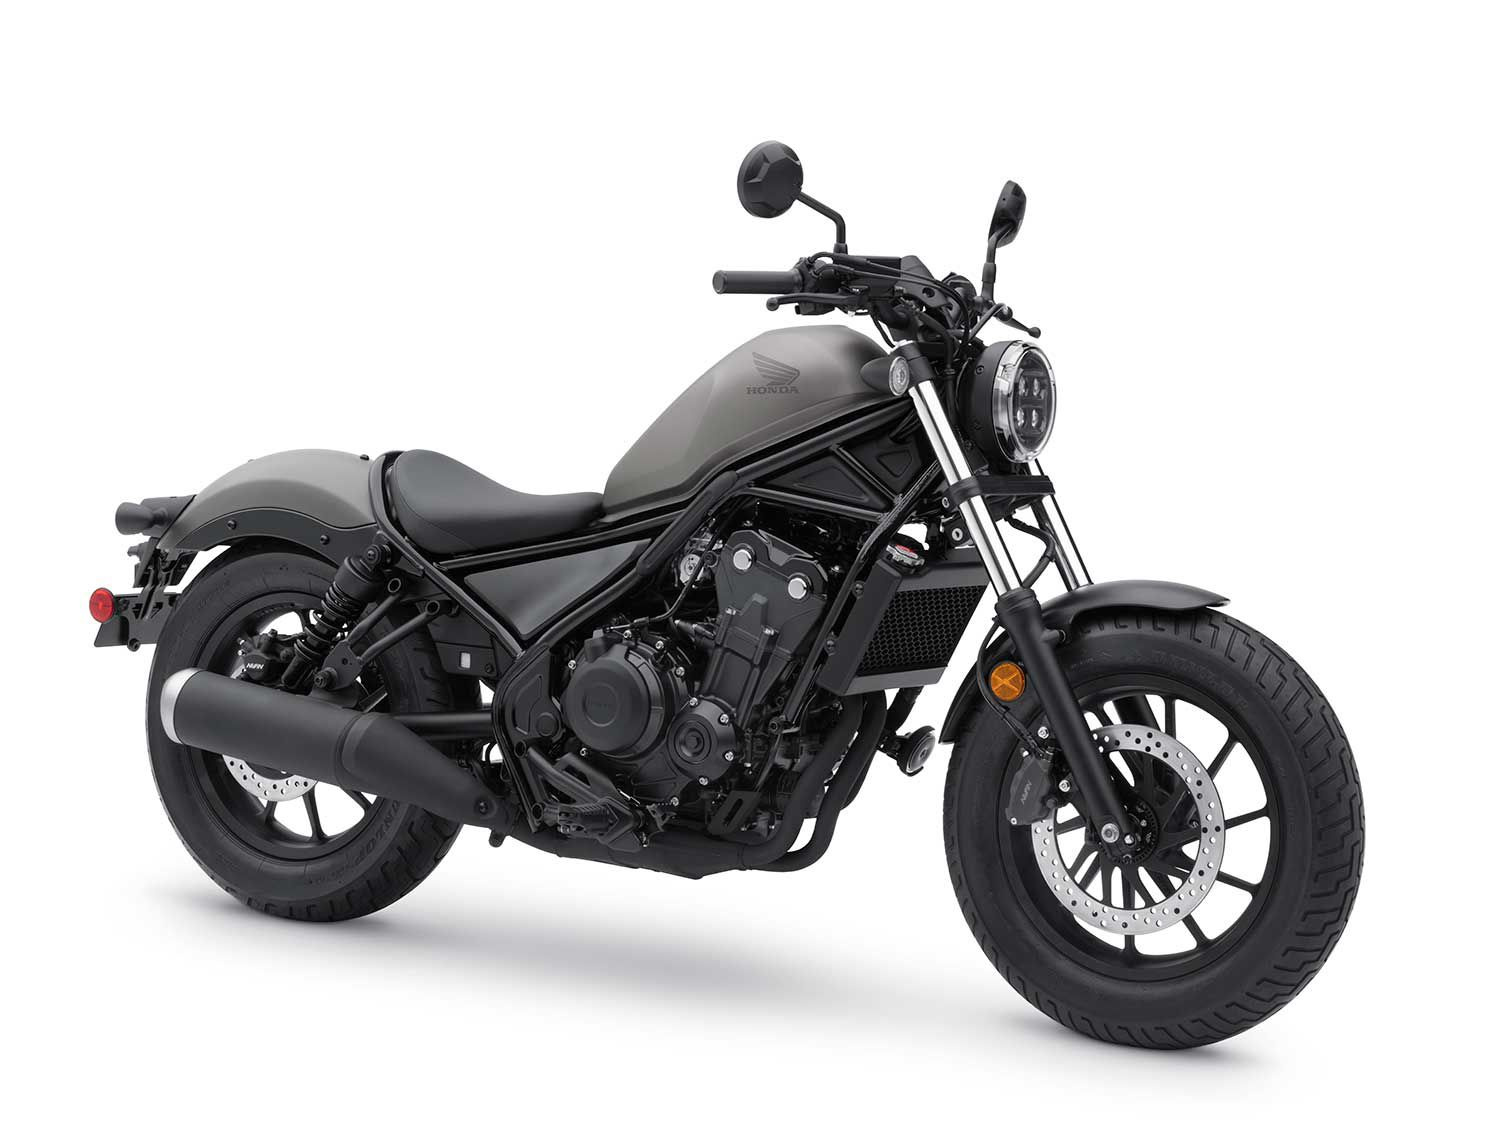 The Honda Rebel 500 comes into 2020 with updated styling, suspension internals, and this Matte Armored Silver paint scheme.